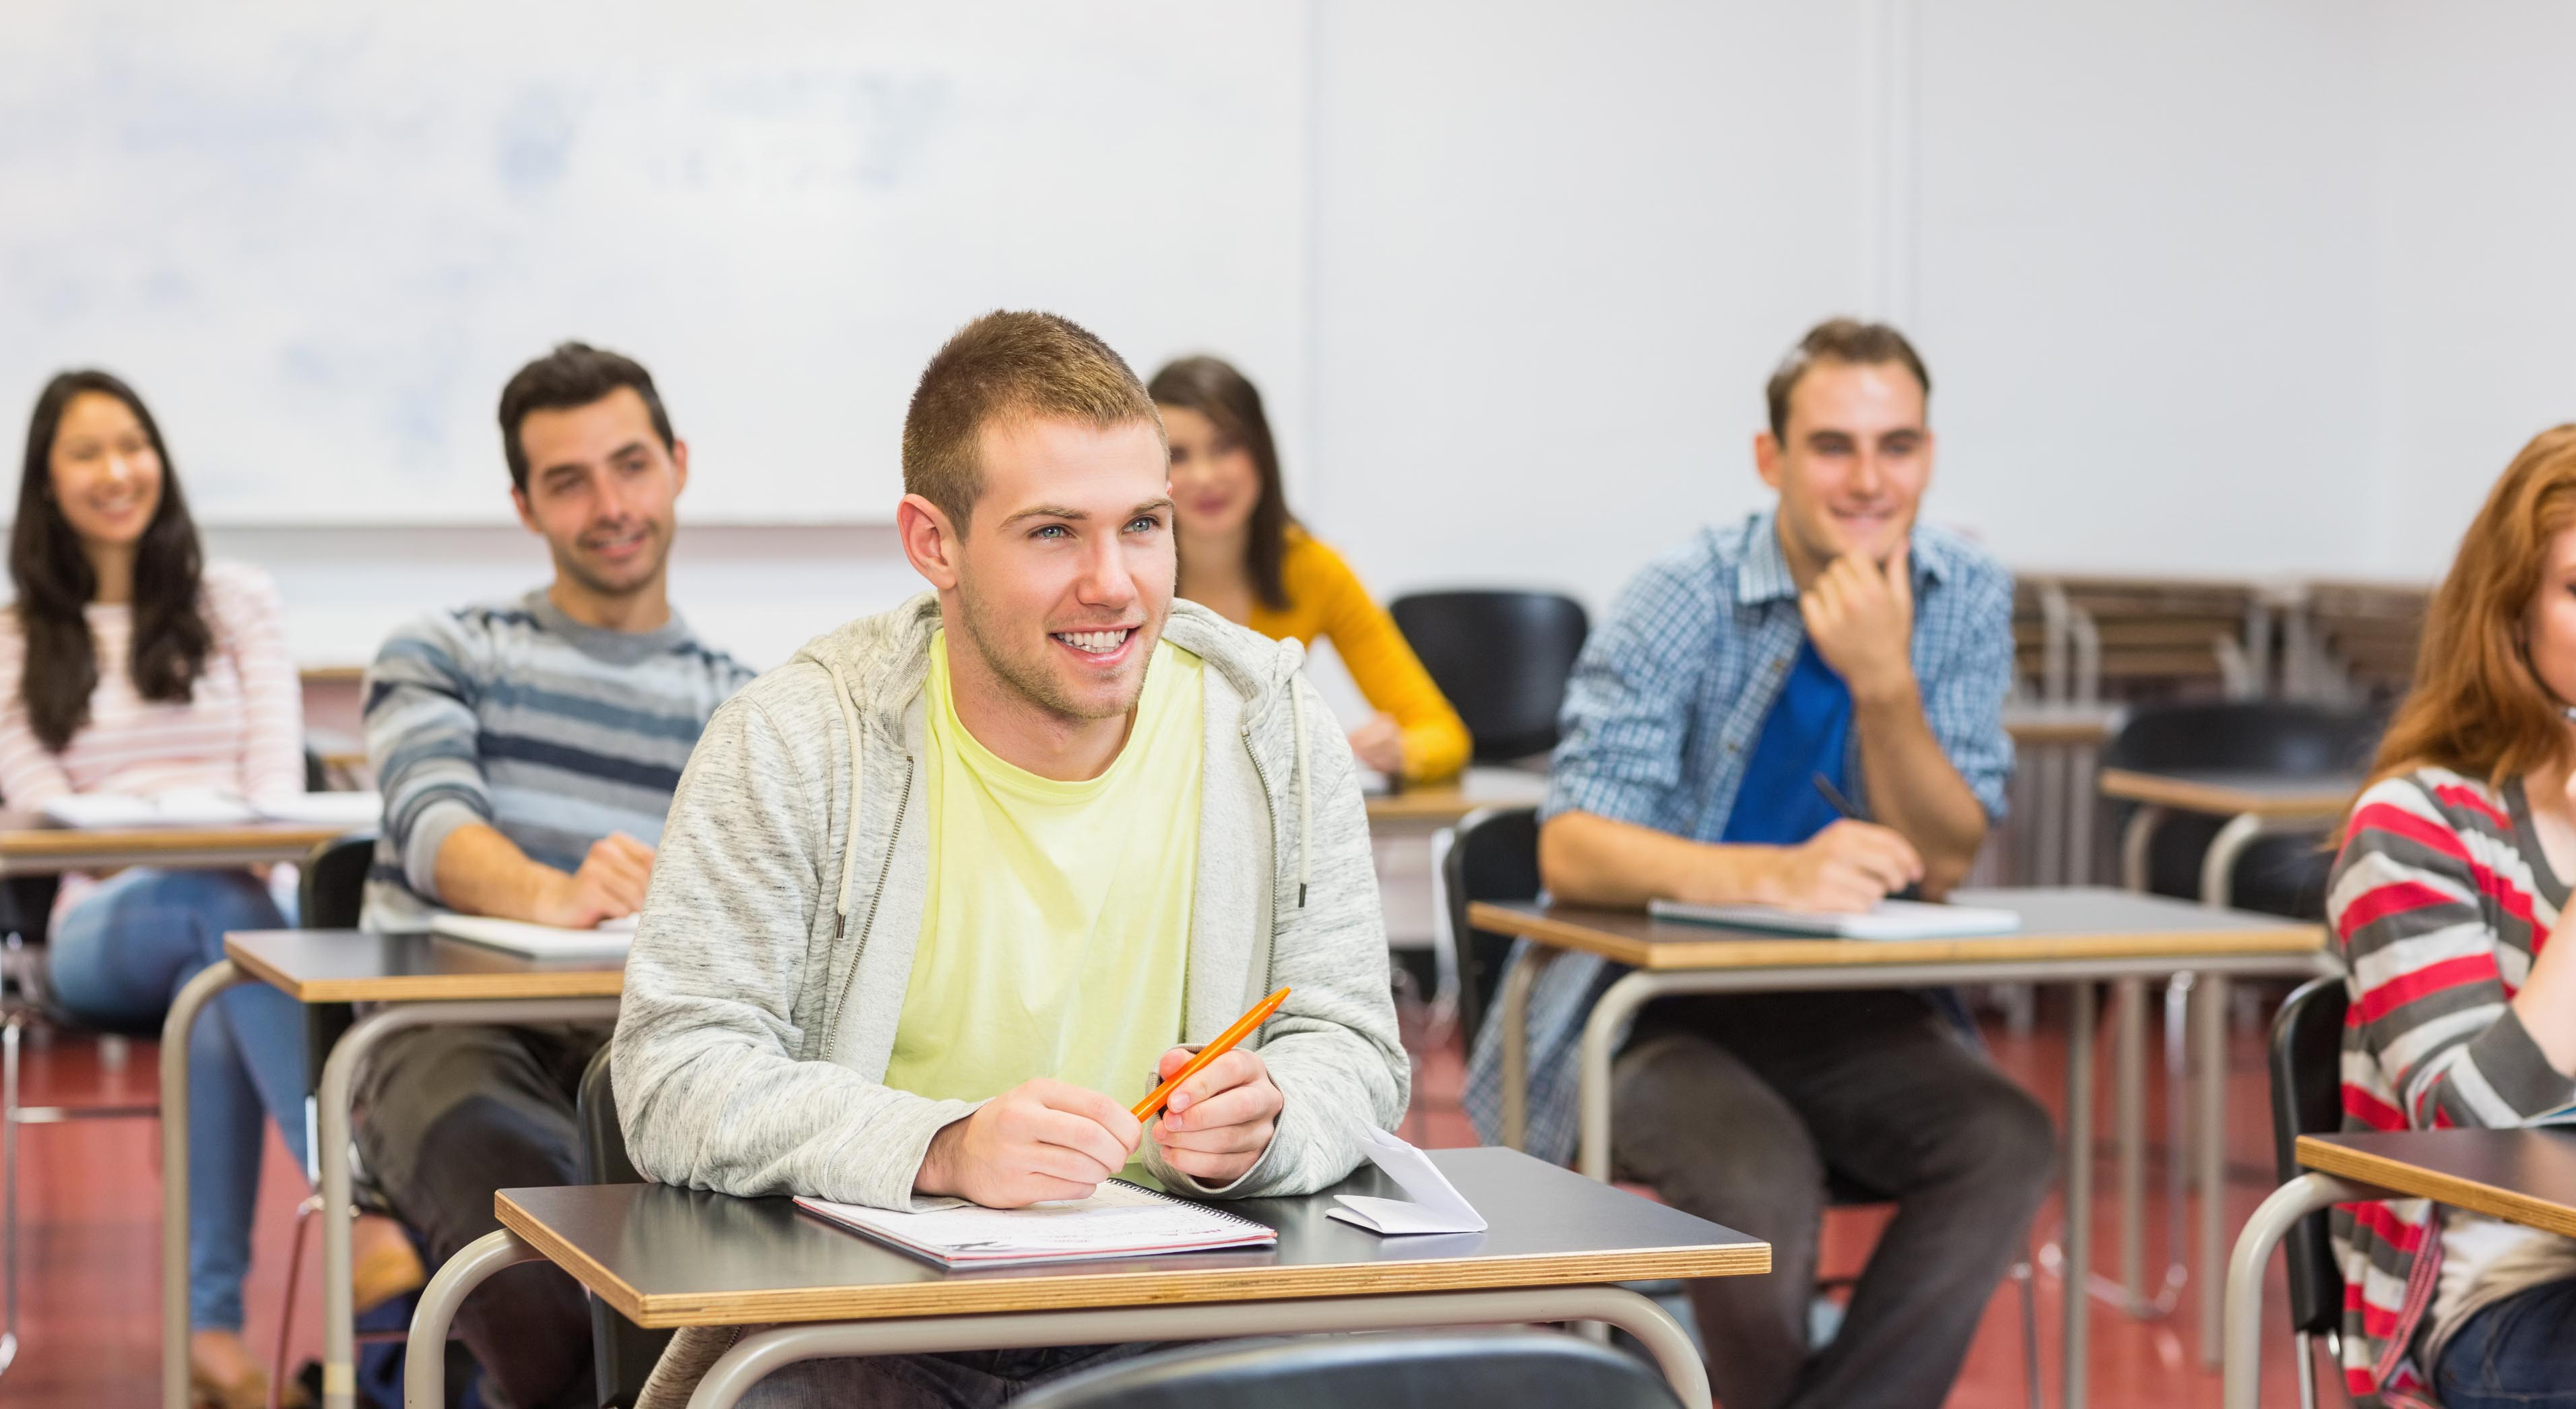 Group of young students smiling in the college classroom